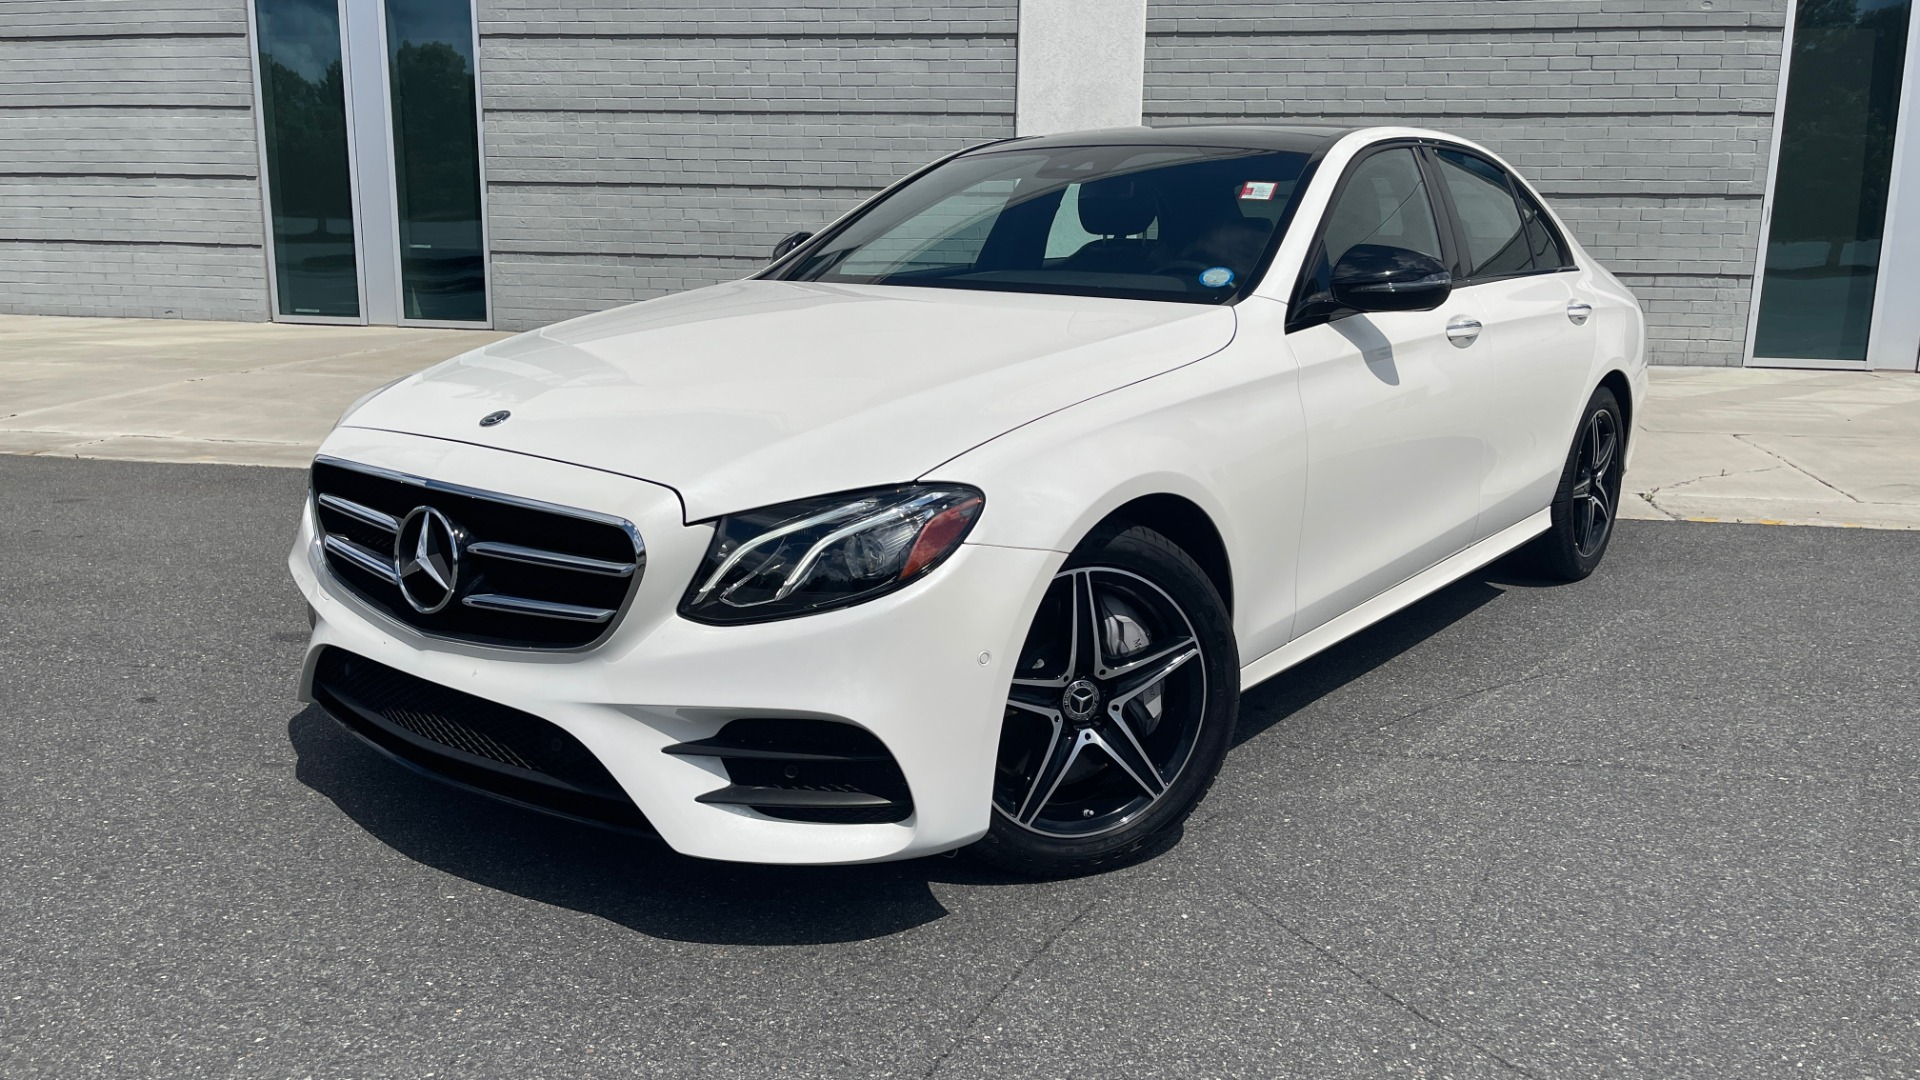 Used 2018 Mercedes-Benz E-CLASS E 300 PREMIUM / NIGHT PKG / PANO-ROOF / BURMESTER / REARVIEW for sale $42,399 at Formula Imports in Charlotte NC 28227 1